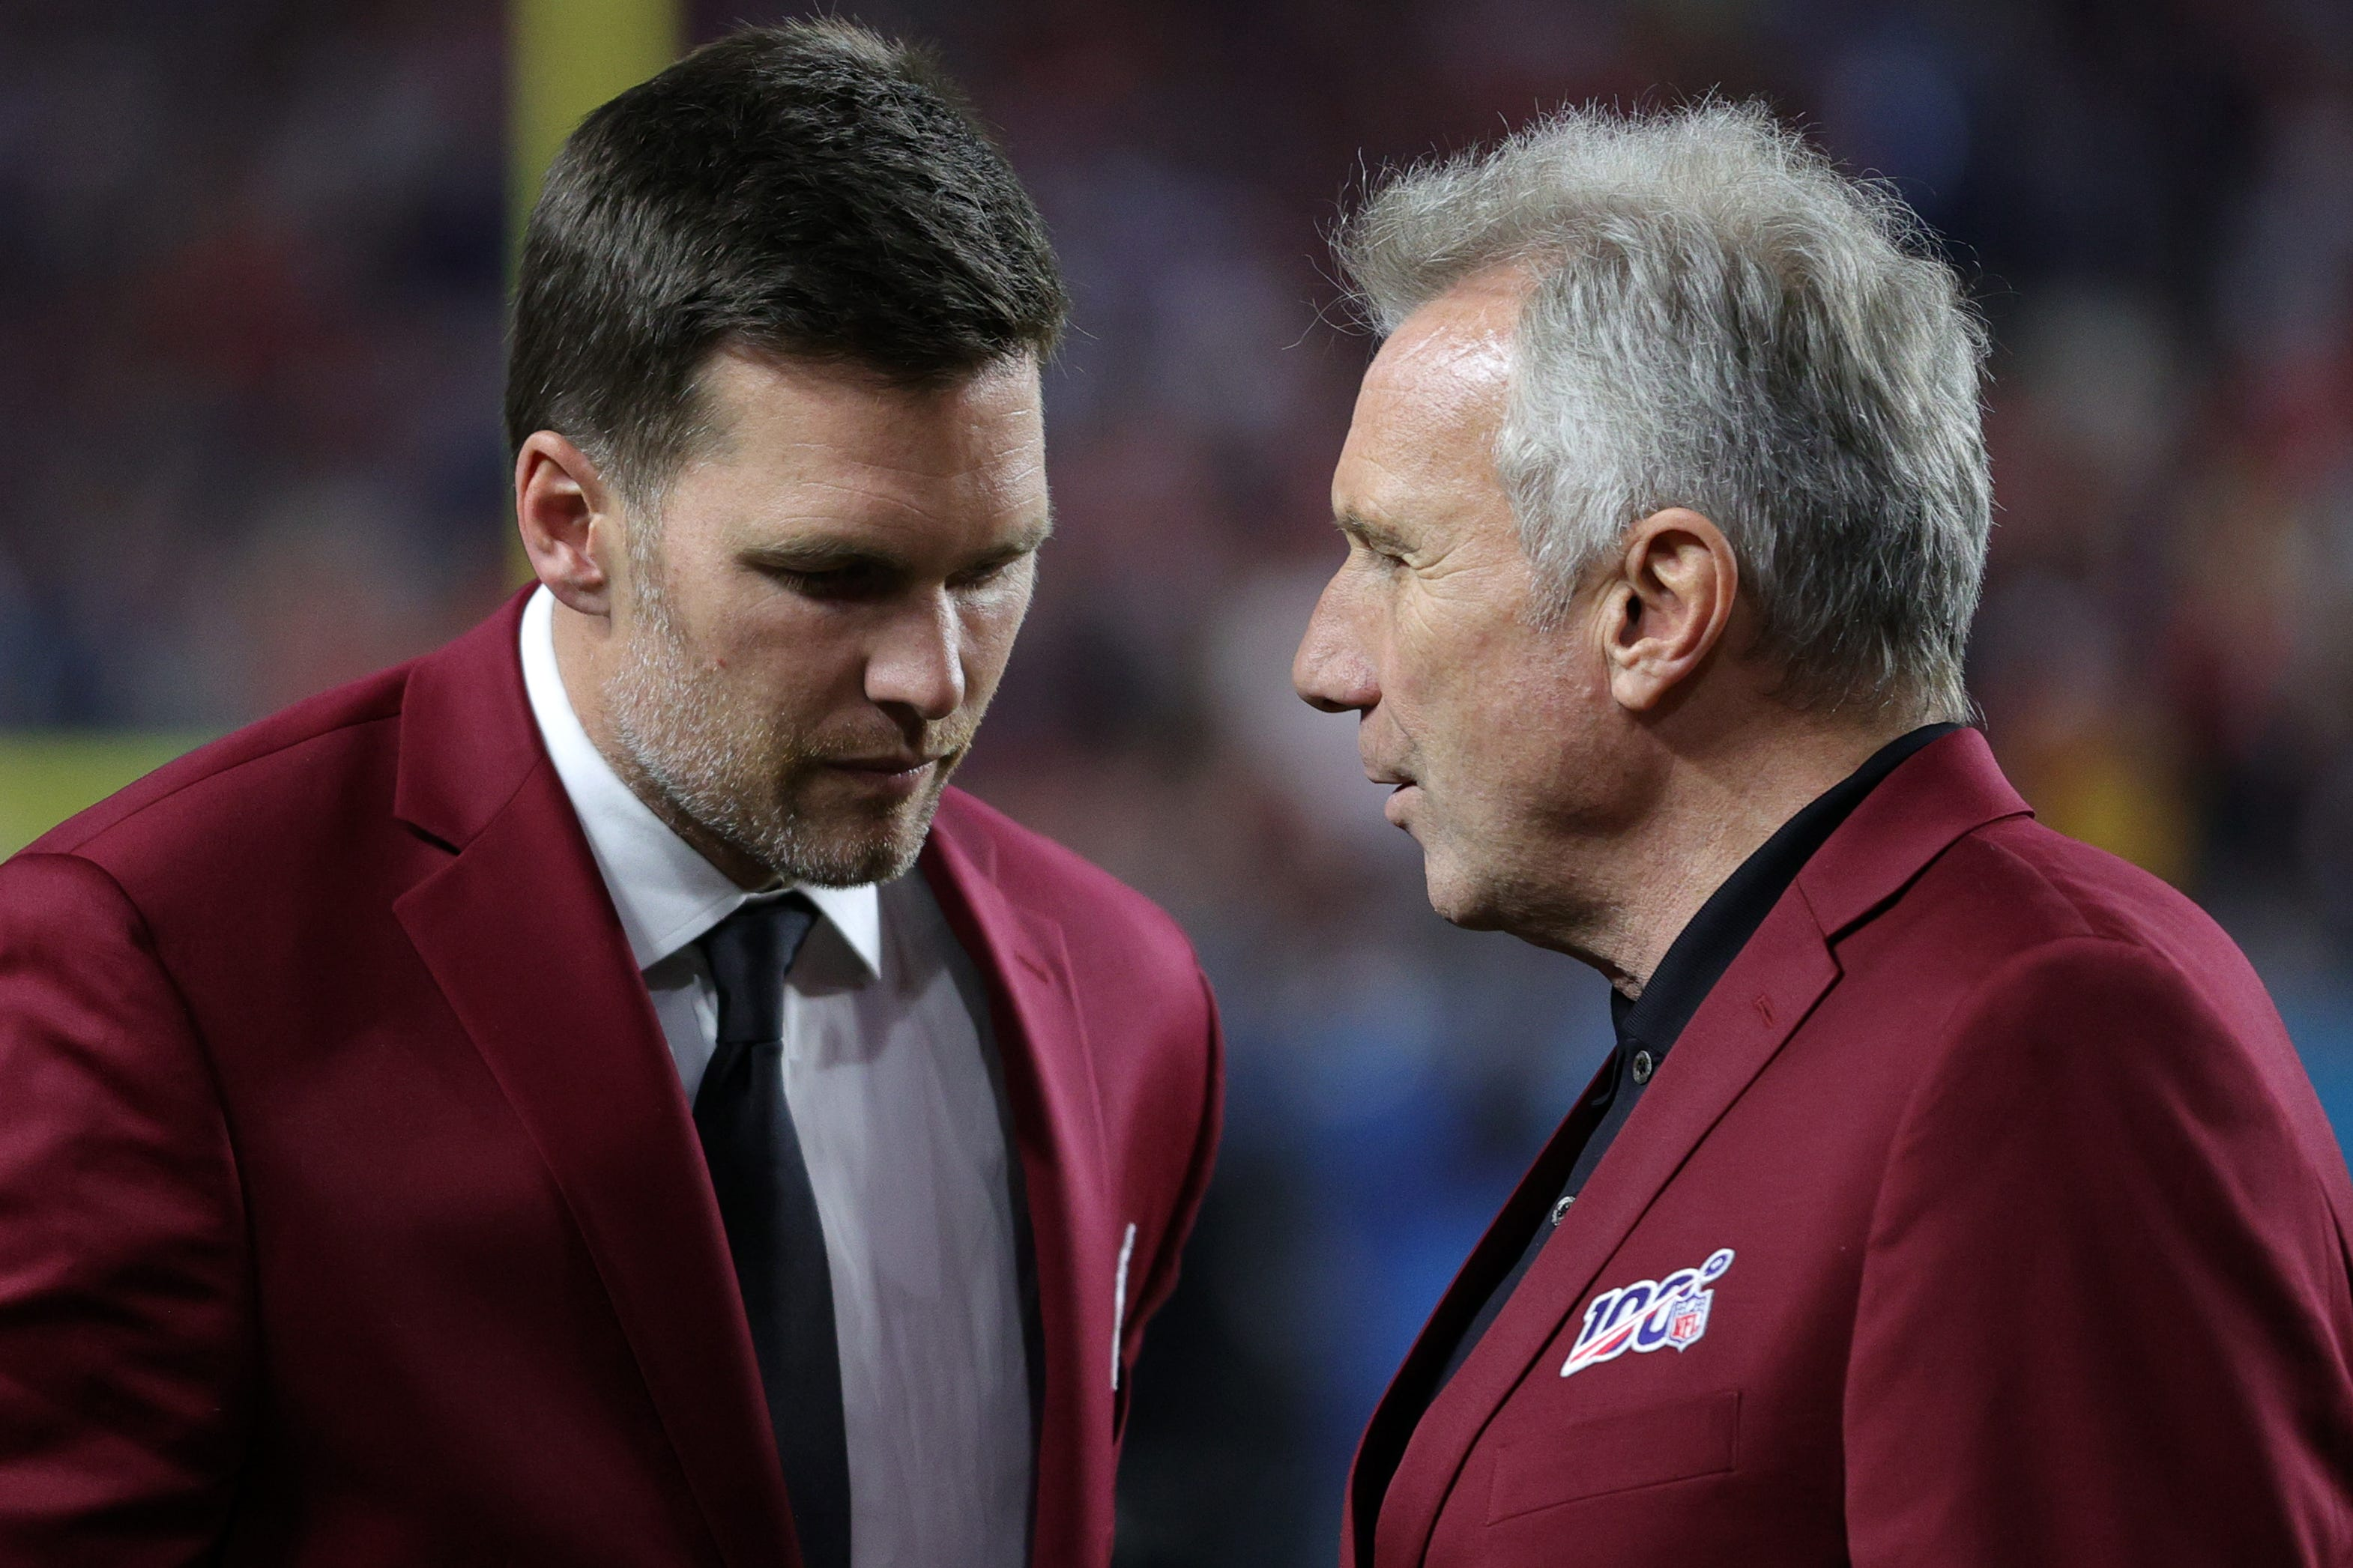 Joe Montana on Tom Brady s departure from Patriots: New England  made a mistake  in letting QB  get away